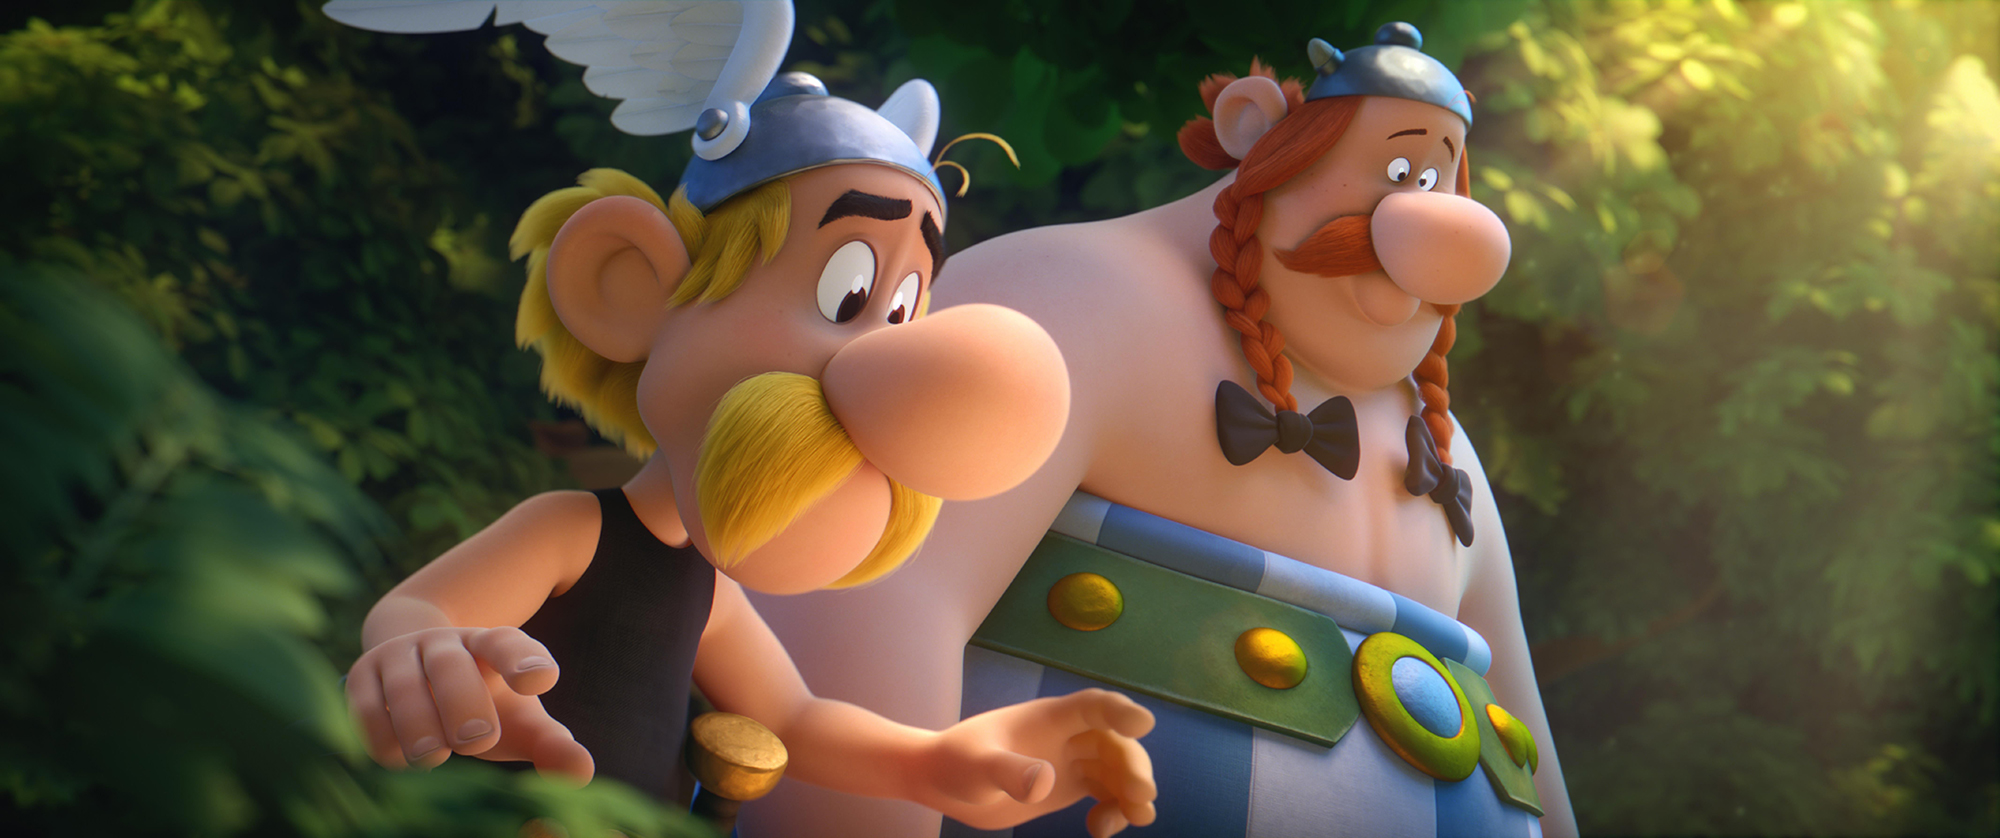 Image 1 of the Asterix: The Secret of the Magic Potion gallery